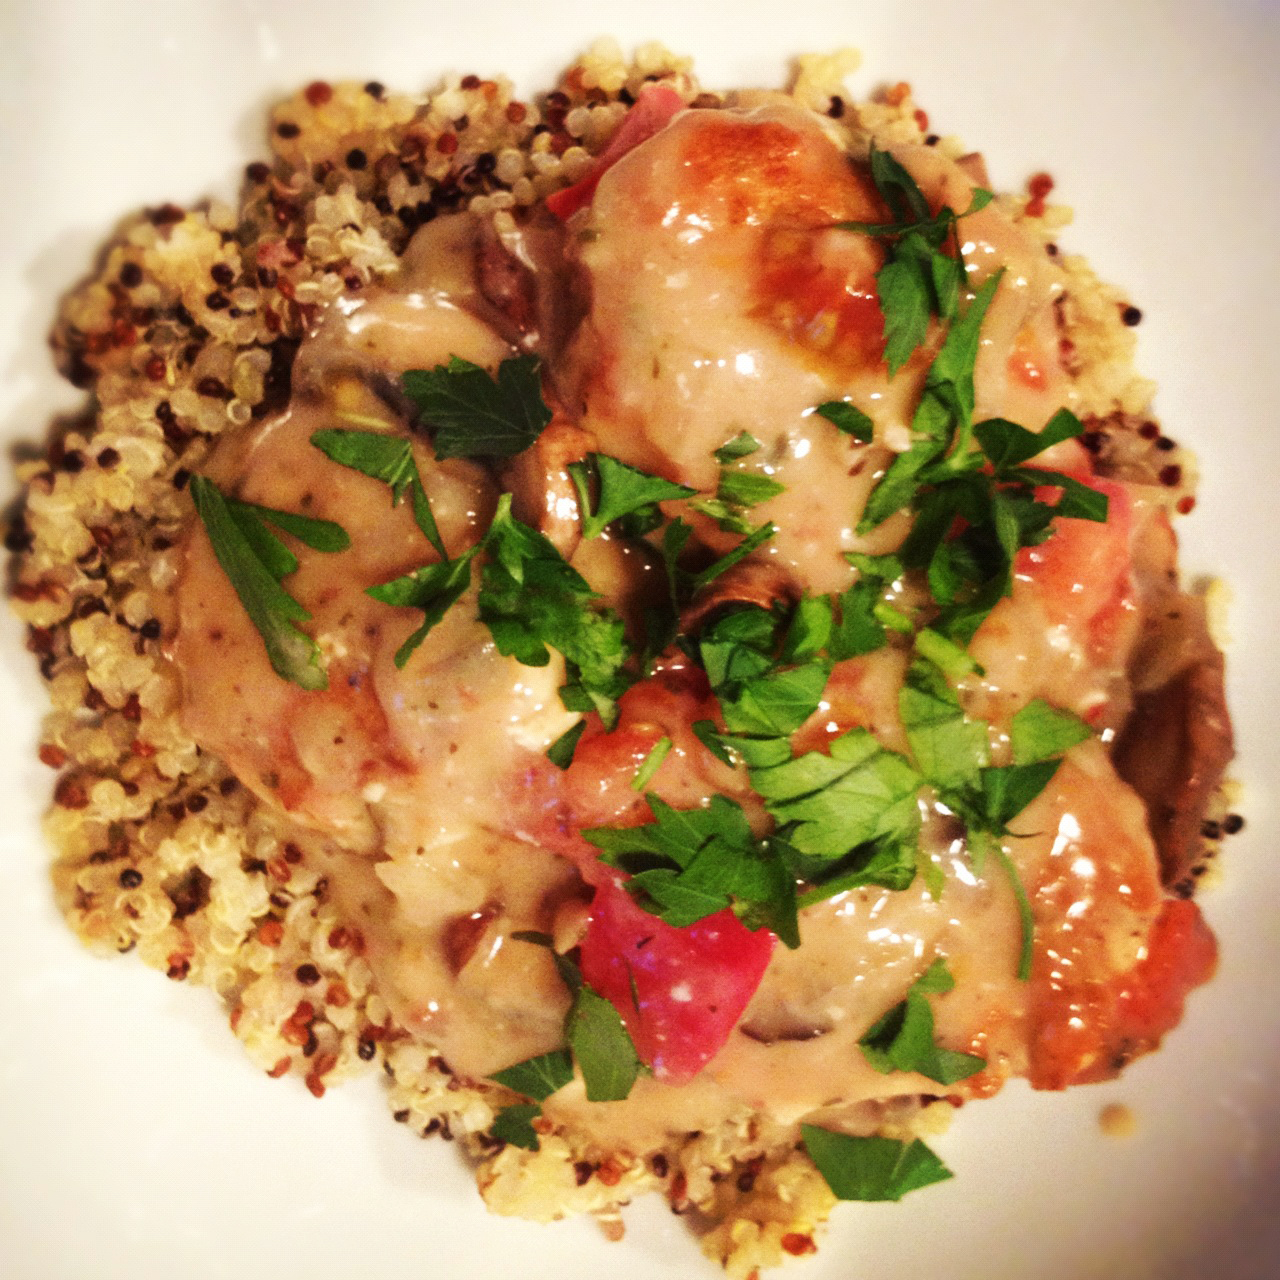 [Recipe] Herbs de Provence Chicken Meatballs in a Cremini Mushroom sauce with Rainbow Quinoa